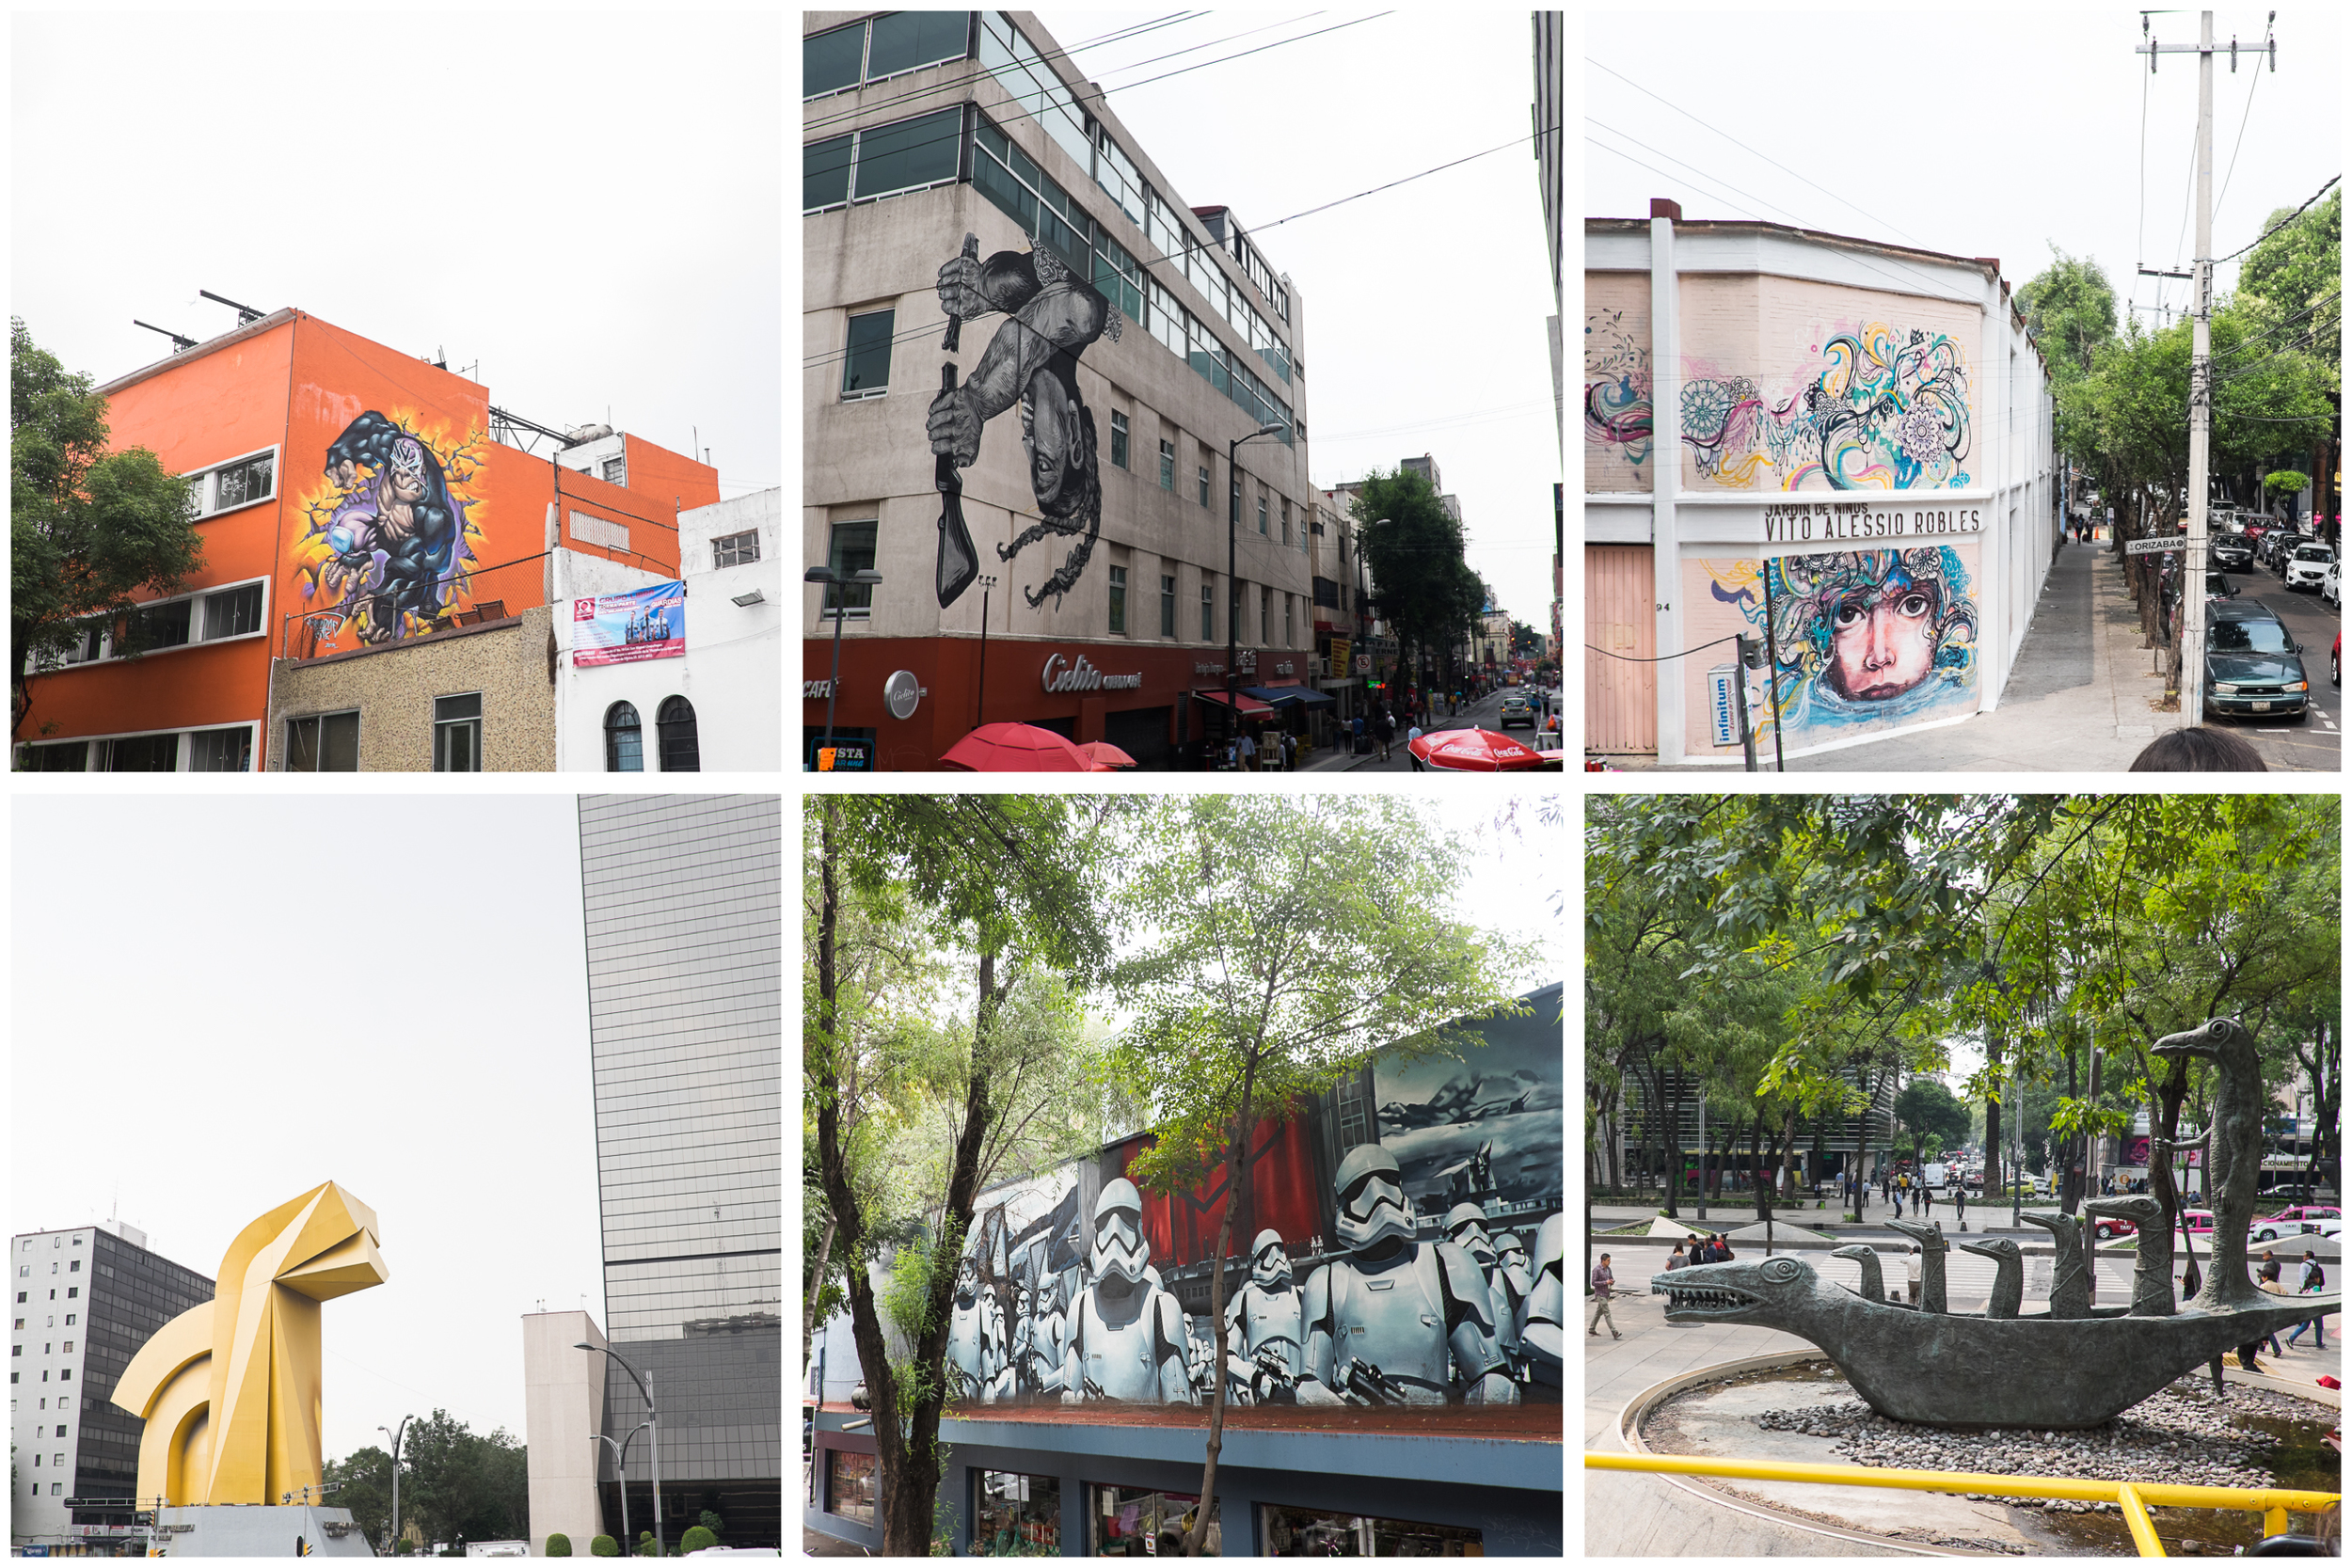 Everywhere throughout the city, we found incredible street art installations, murals and inventive graffiti.